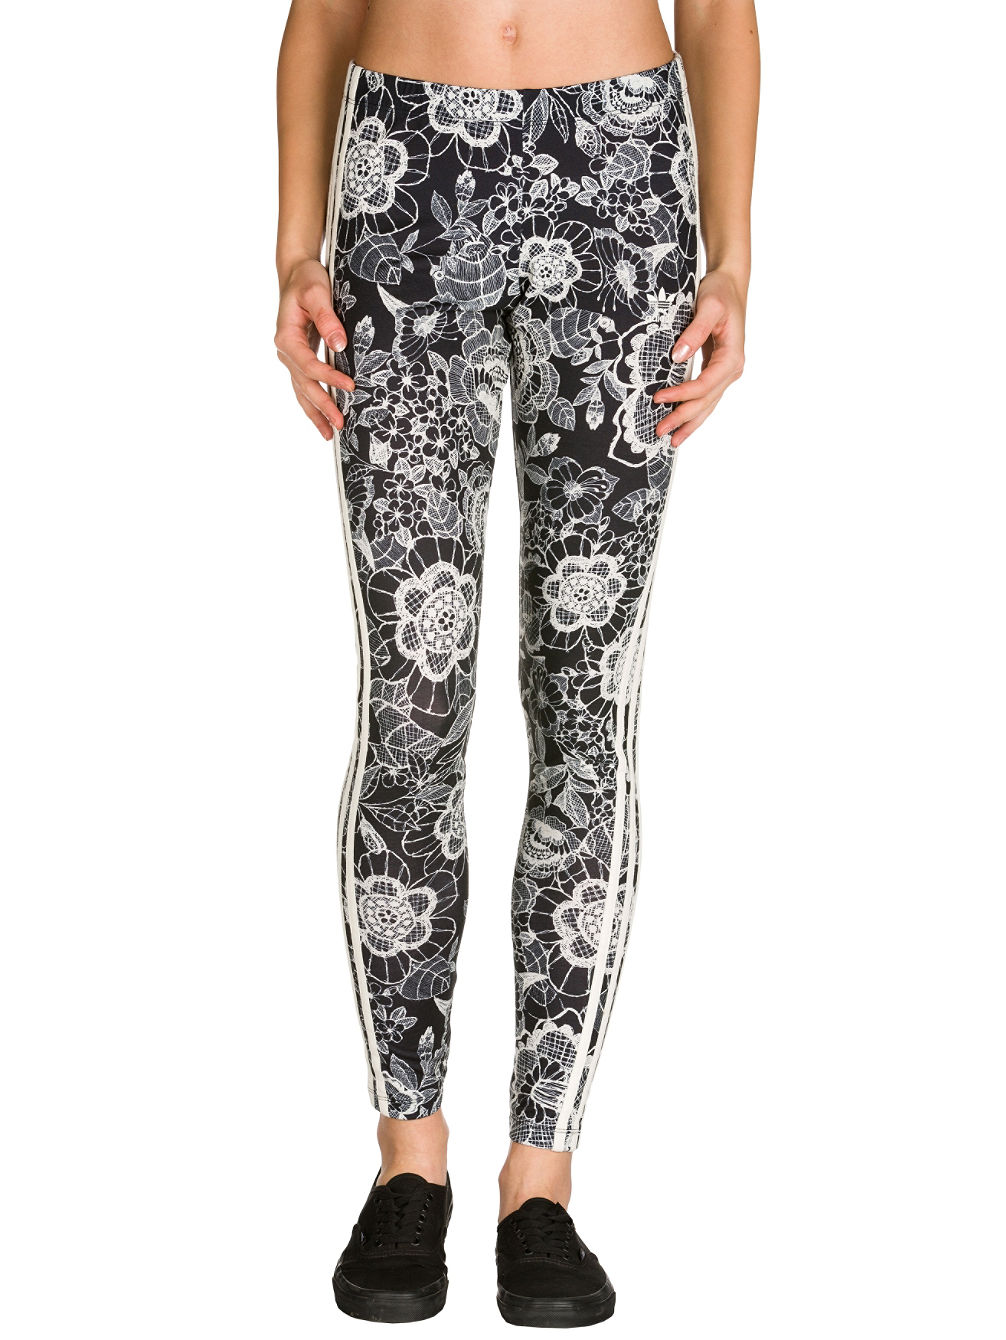 adidas-originals-florido-3-stripes-leggings